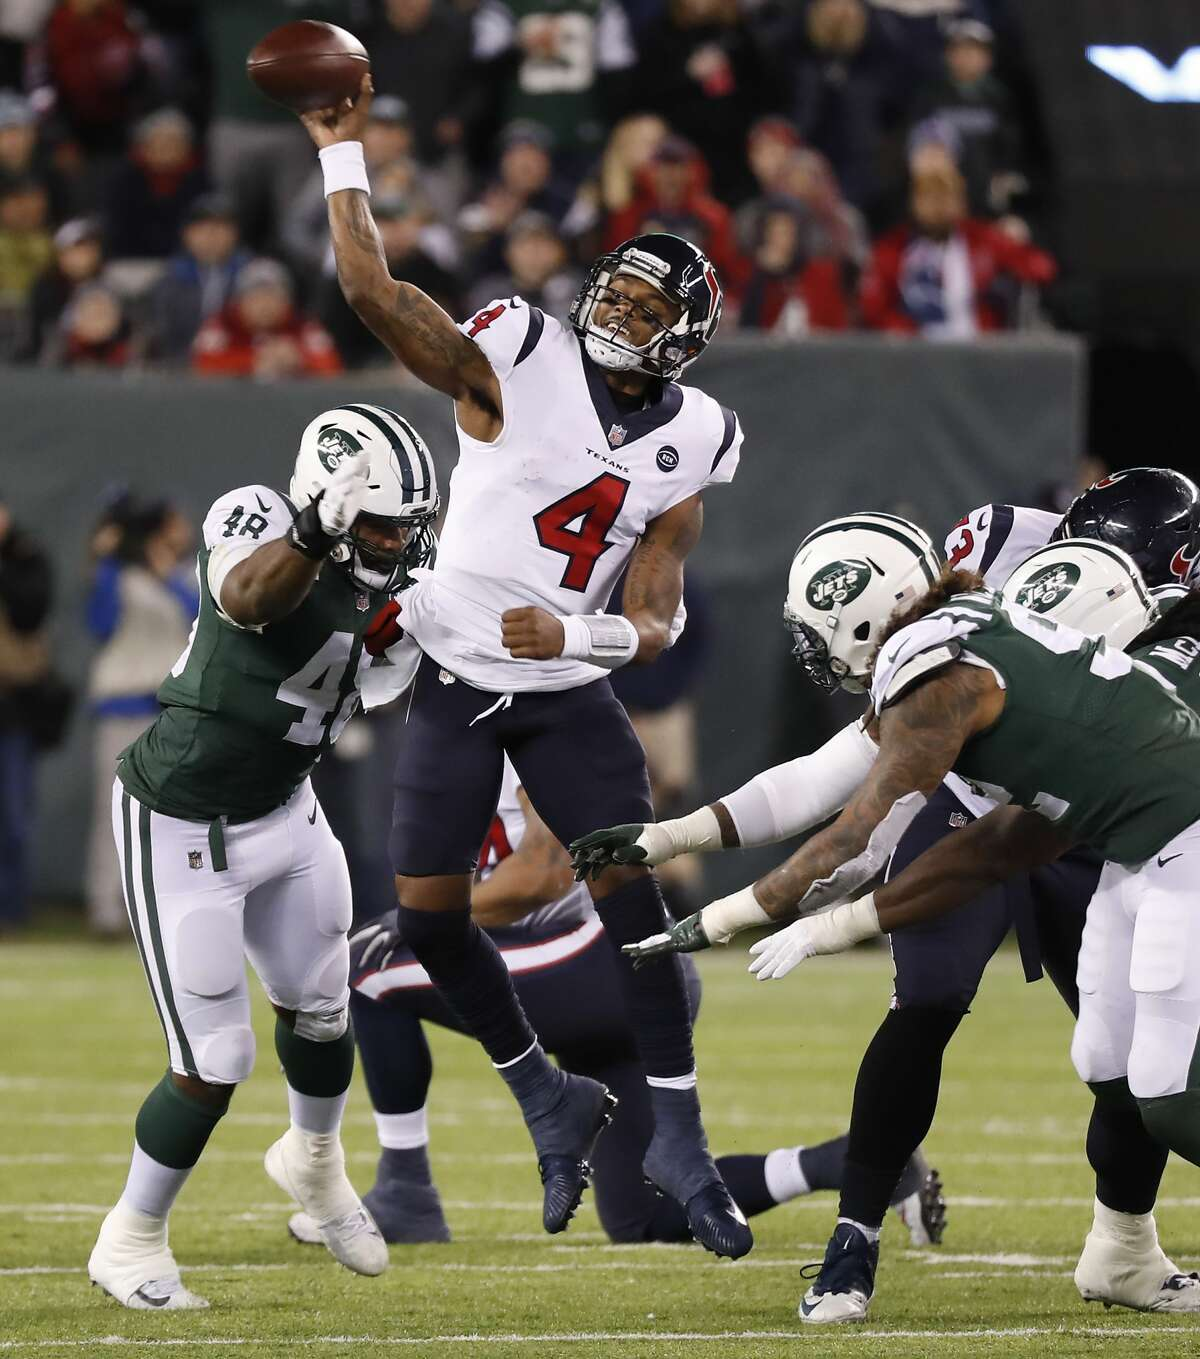 Houston Texans quarterback Deshaun Watson (4) makes a throw as he is hit by New York Jets outside linebacker Jordan Jenkins (48) during the fourth quarter of an NFL football game at MetLife Stadium on Saturday, Dec. 15, 2018, in East Rutherford, N.J.